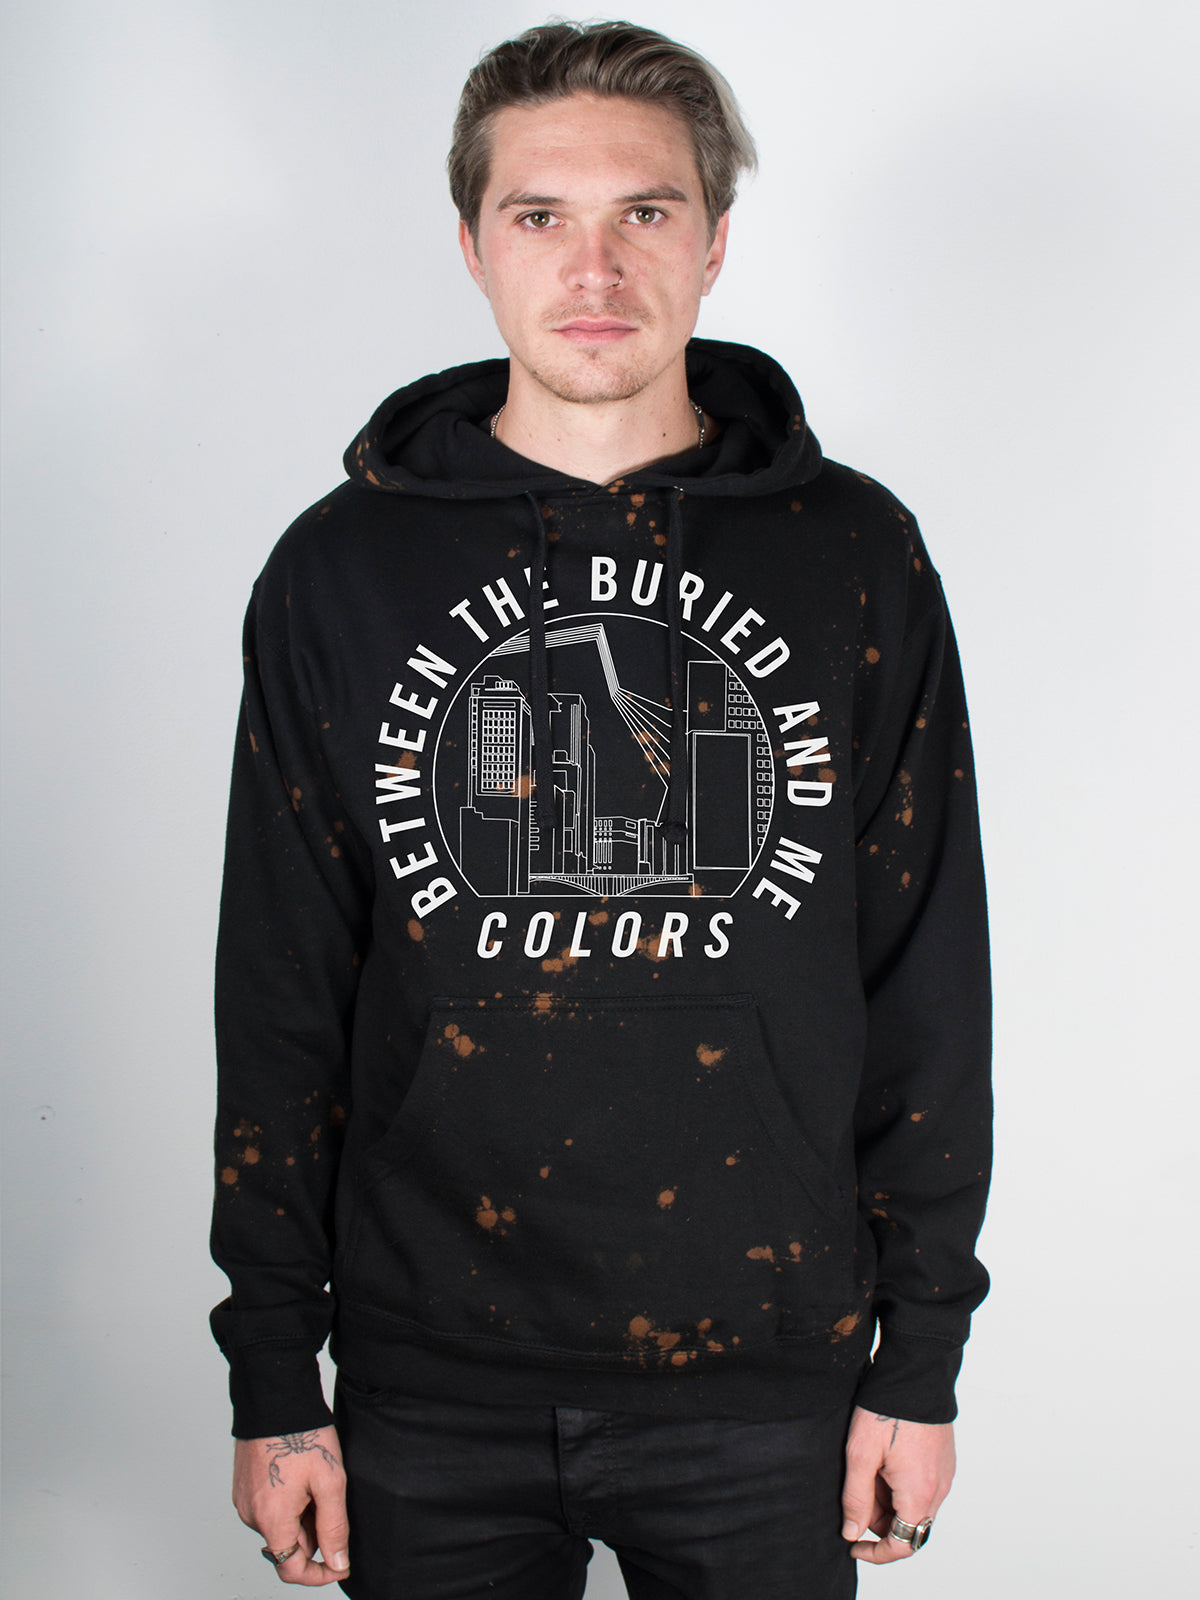 Between the Buried and Me - Colors Bleach Hoodie - Merch Limited